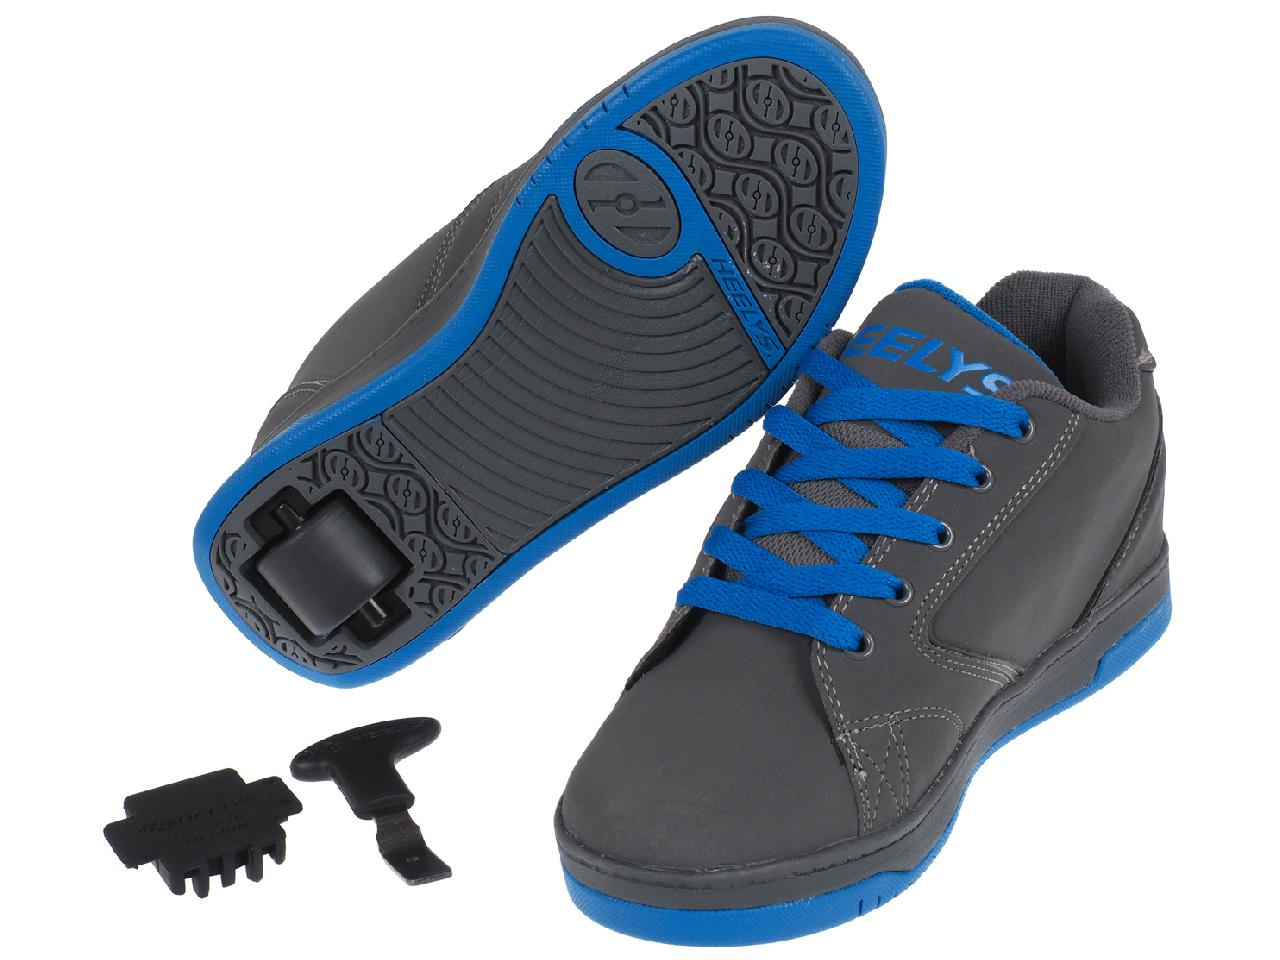 Shoes-to-Casters-Heelys-Propel-2-0-Grey-Royal-Grey-15616-New thumbnail 5